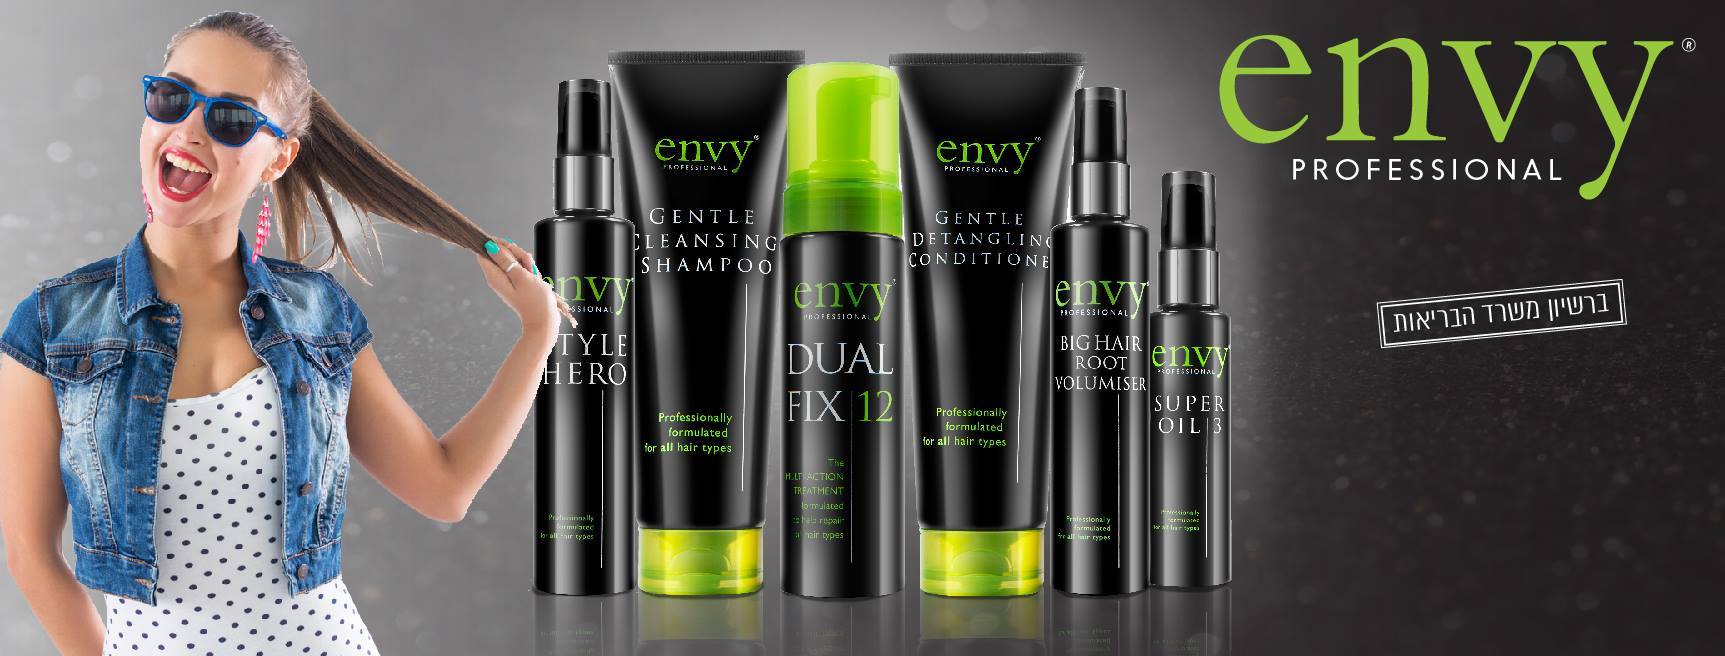 מוצרי ENVY PROFESSIONAL